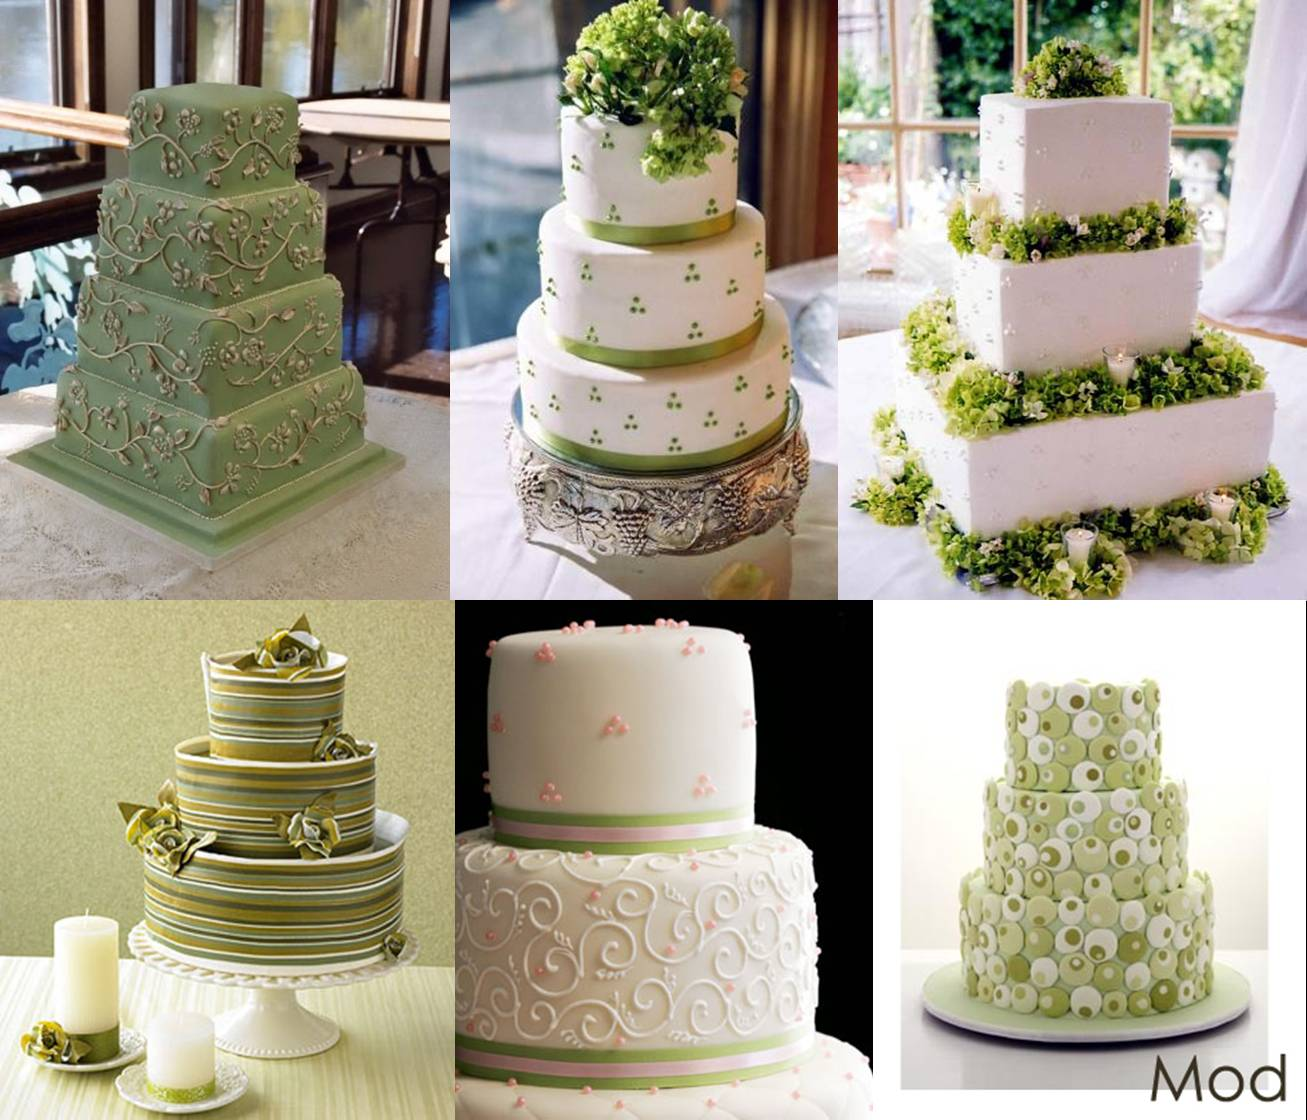 Green Cakes - Elizabeth Anne Designs: The Wedding Blog